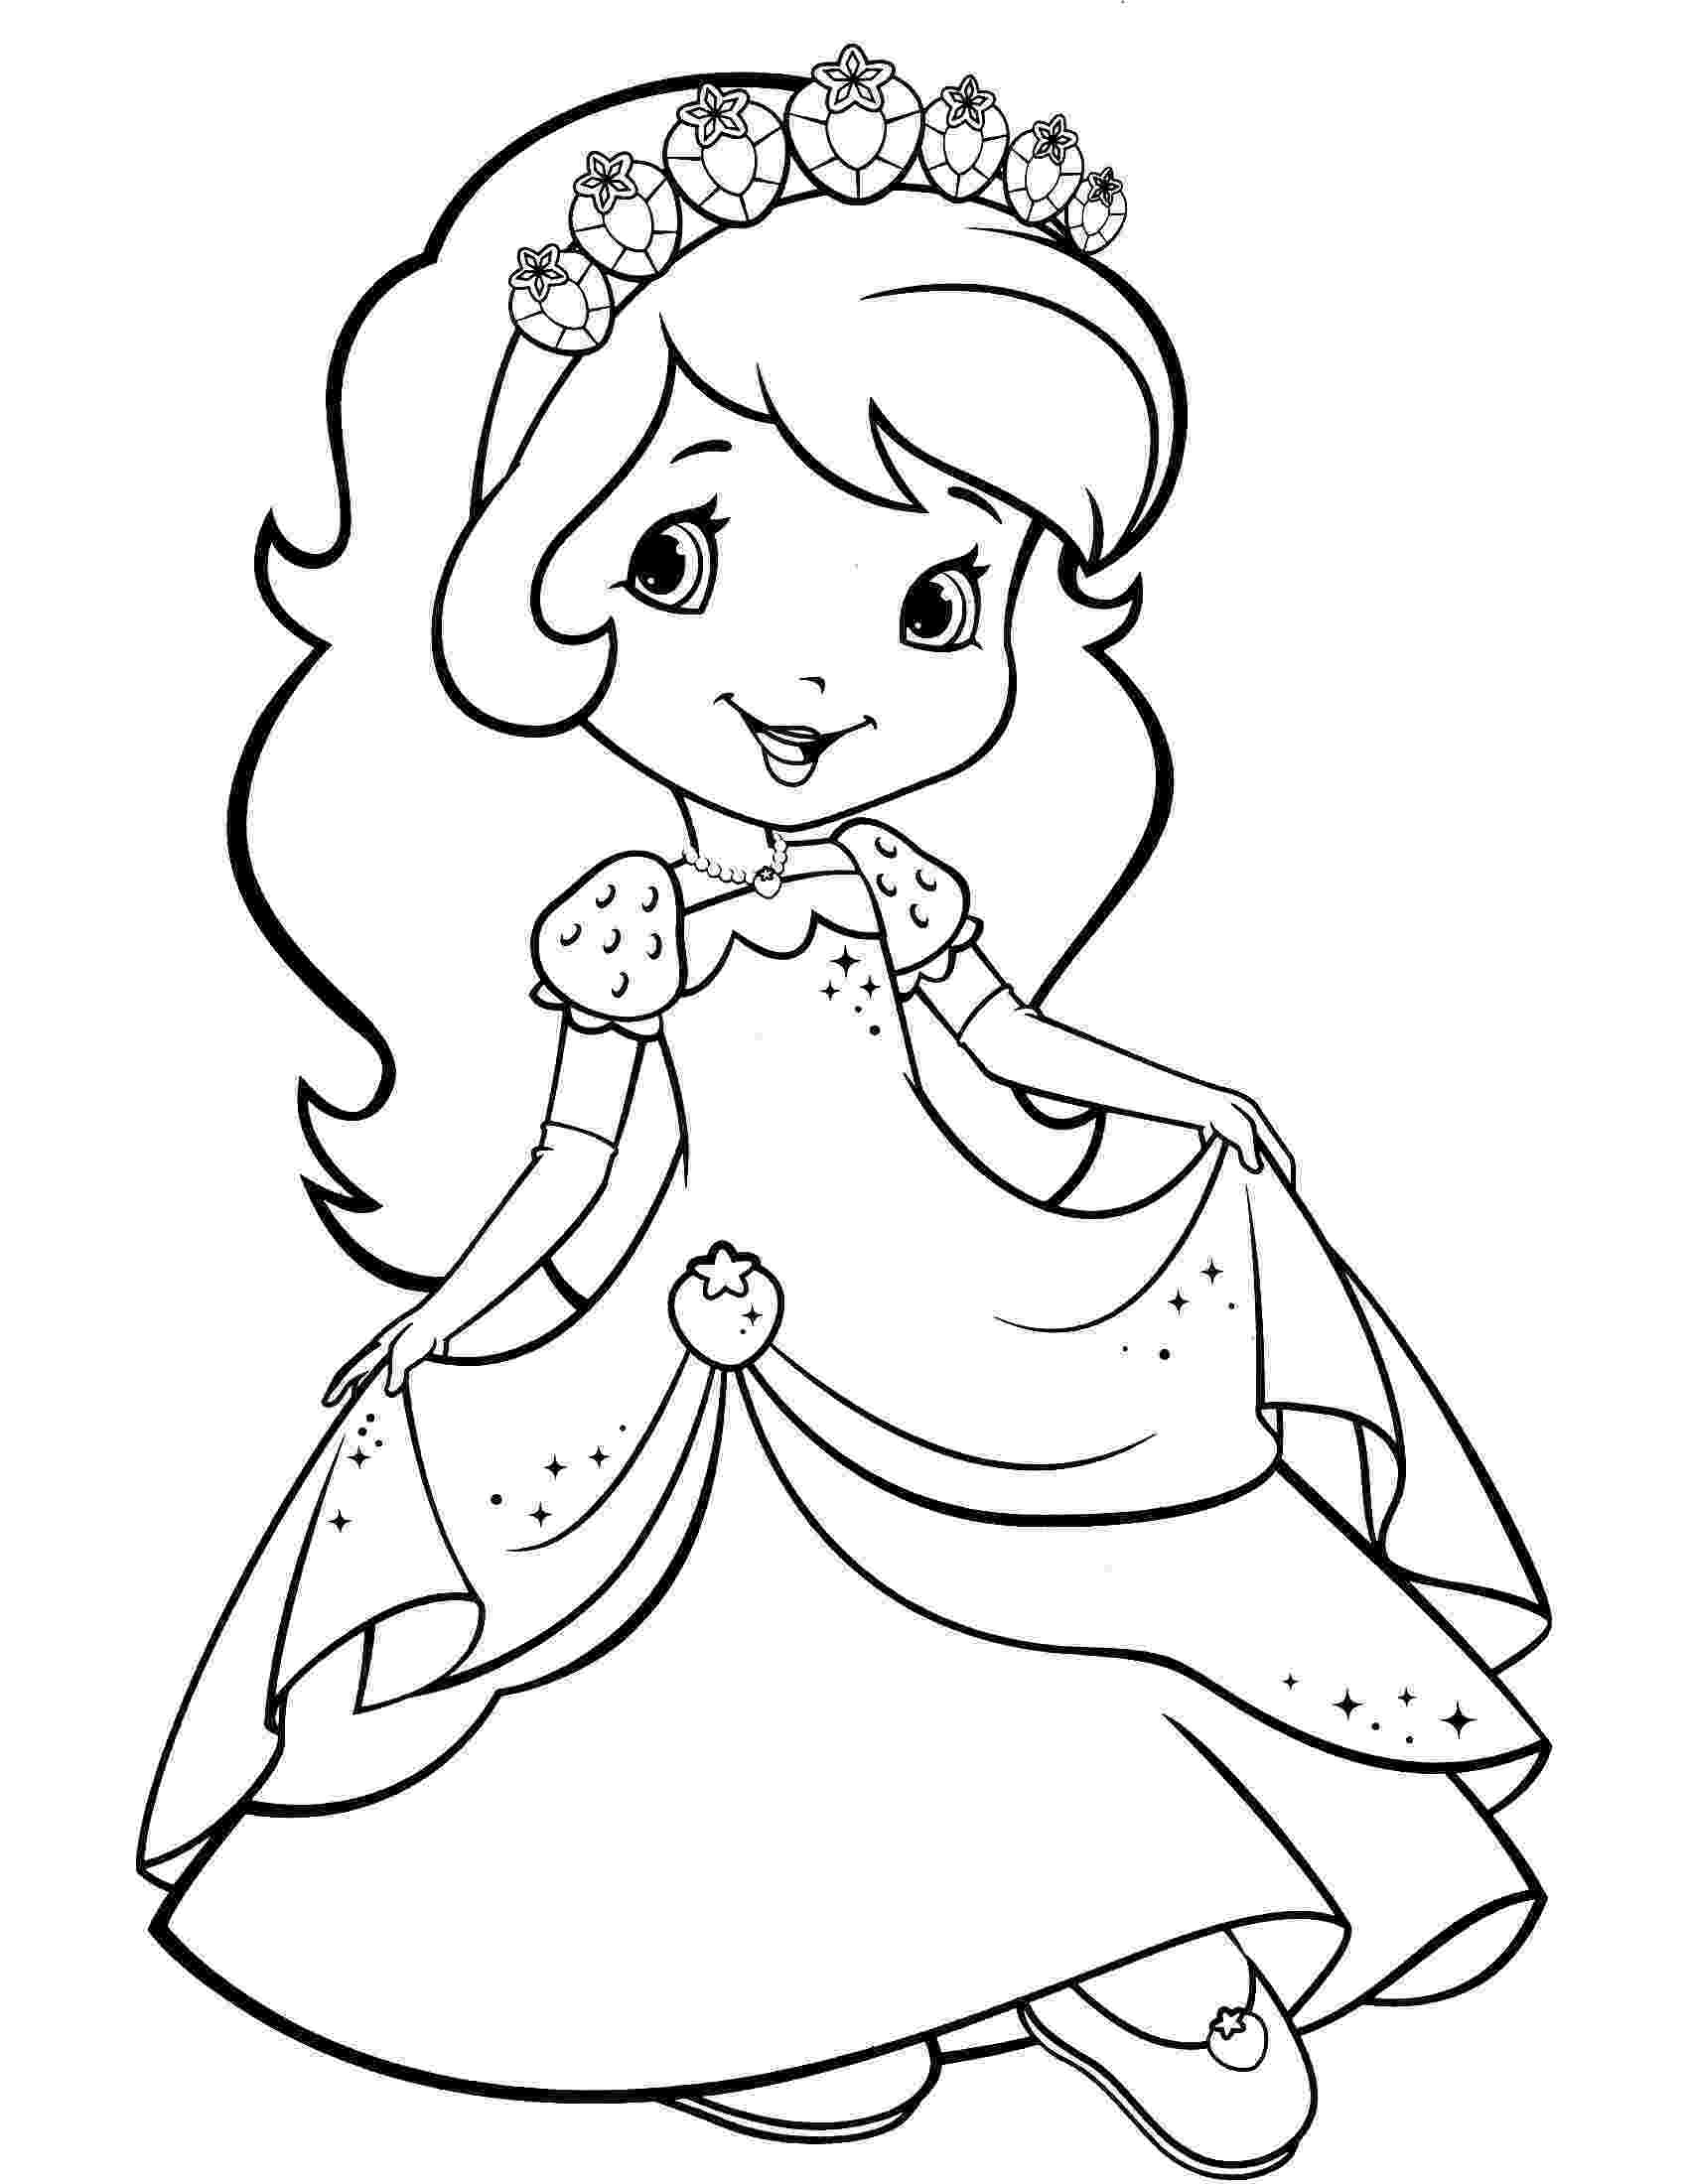 coloring pages strawberry shortcake strawberry shortcake coloring pages getcoloringpagescom strawberry pages coloring shortcake